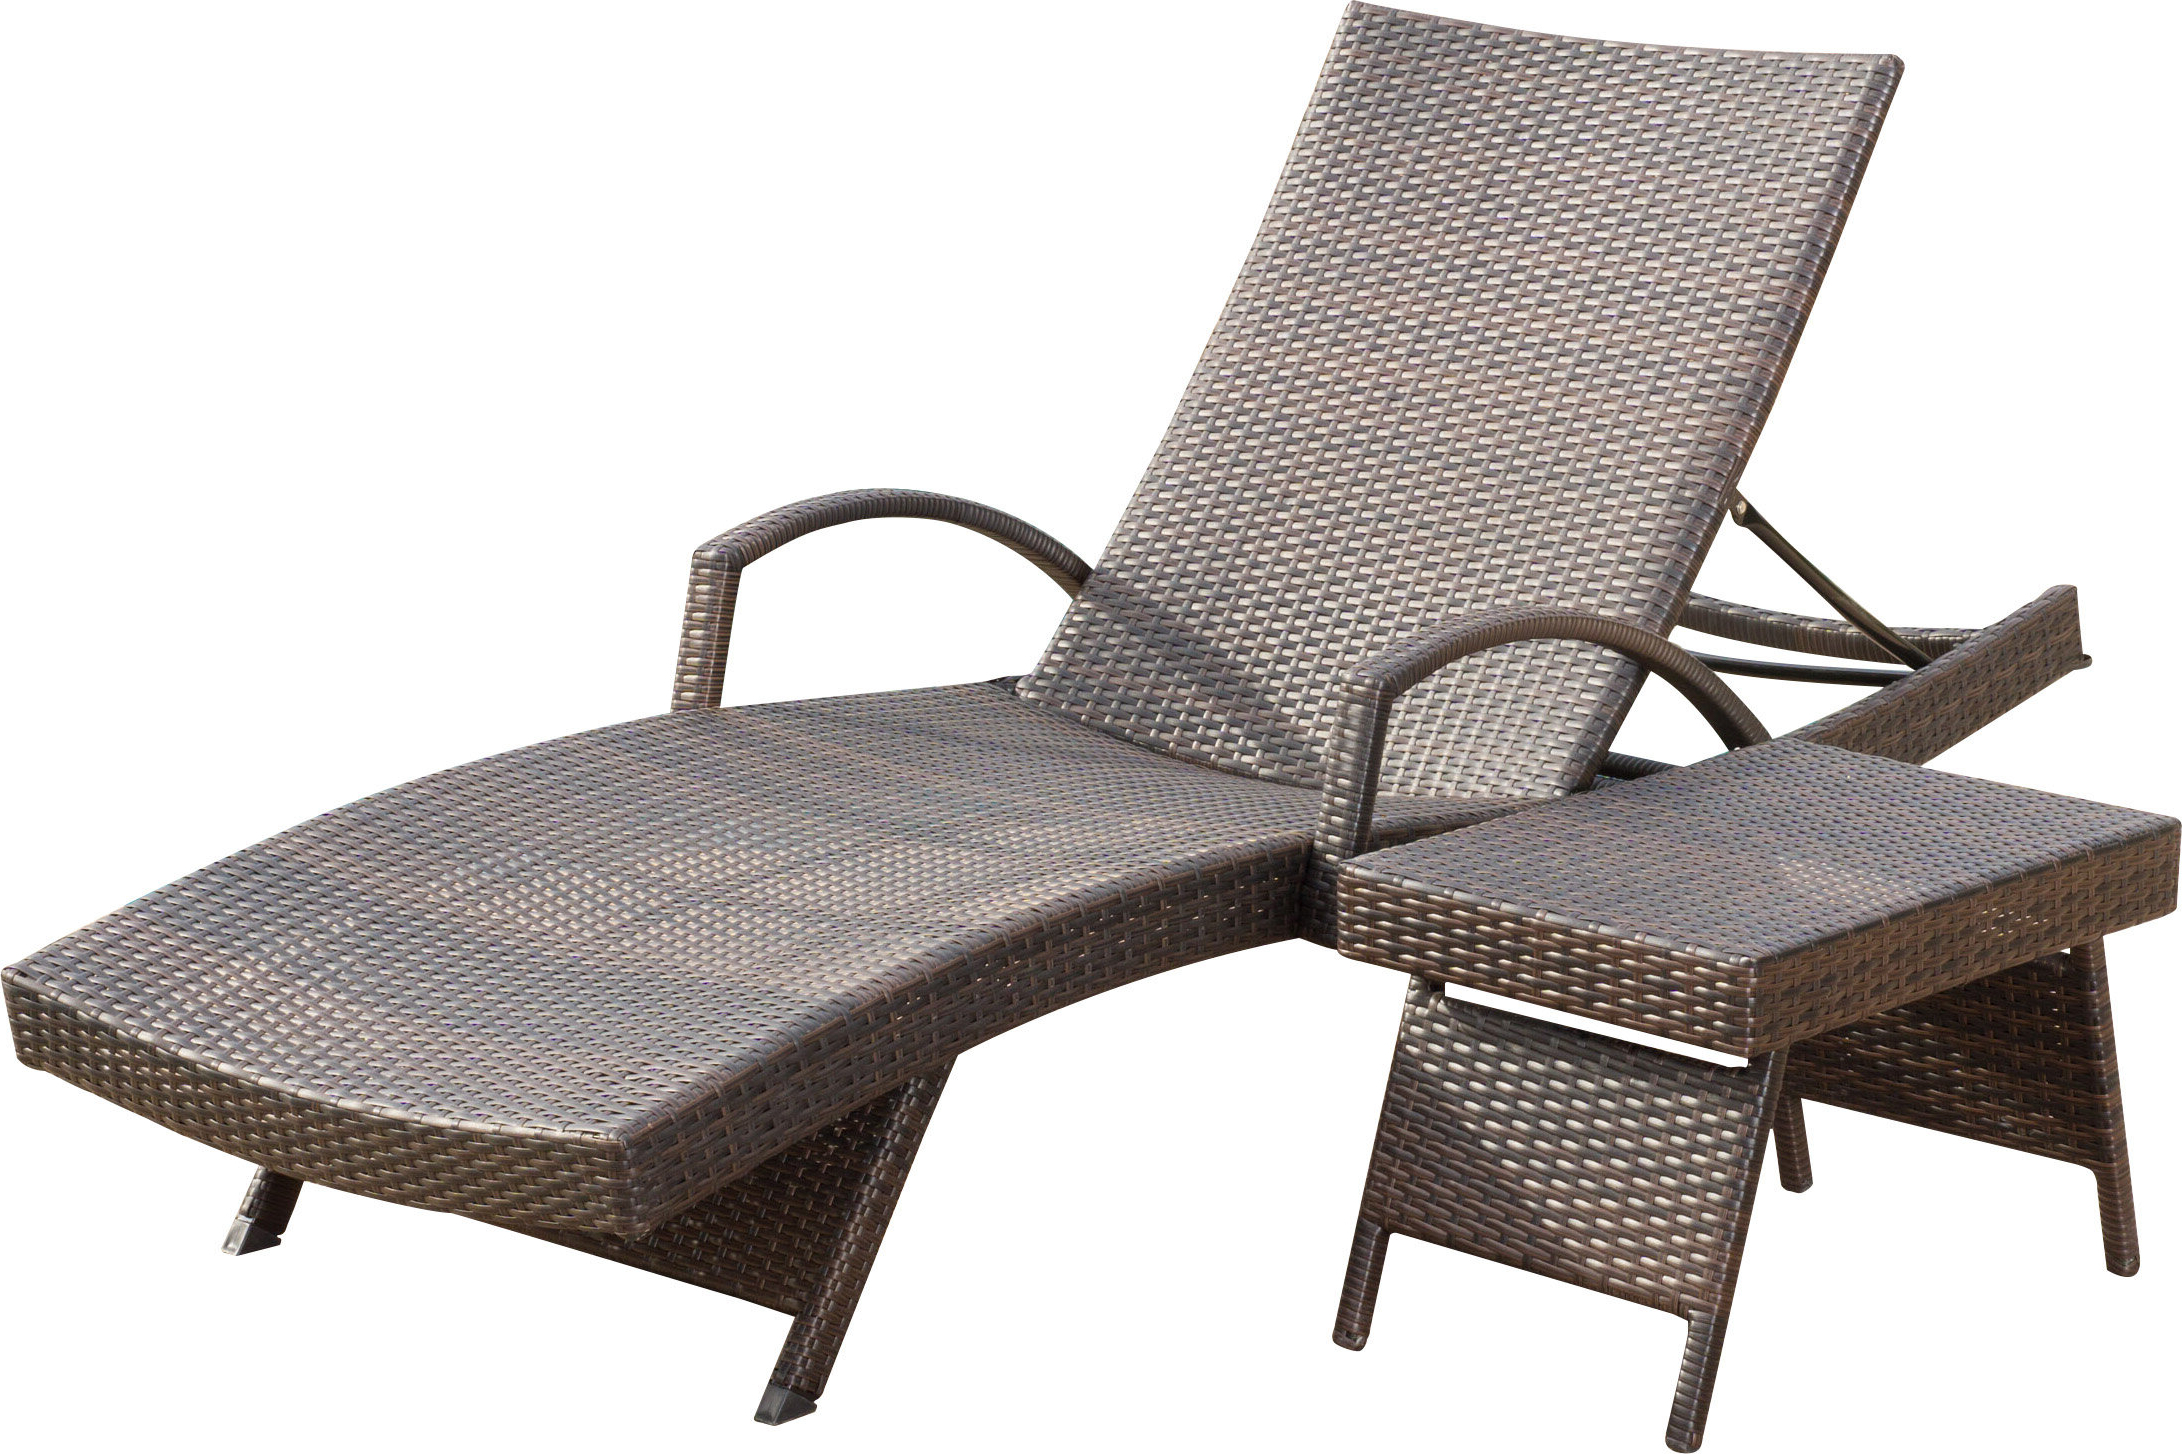 Famous Rebello Adjustable Wicker Reclining Chaise Lounge With Table Within Outdoor Wicker Chaise Lounge Chairs (View 5 of 25)